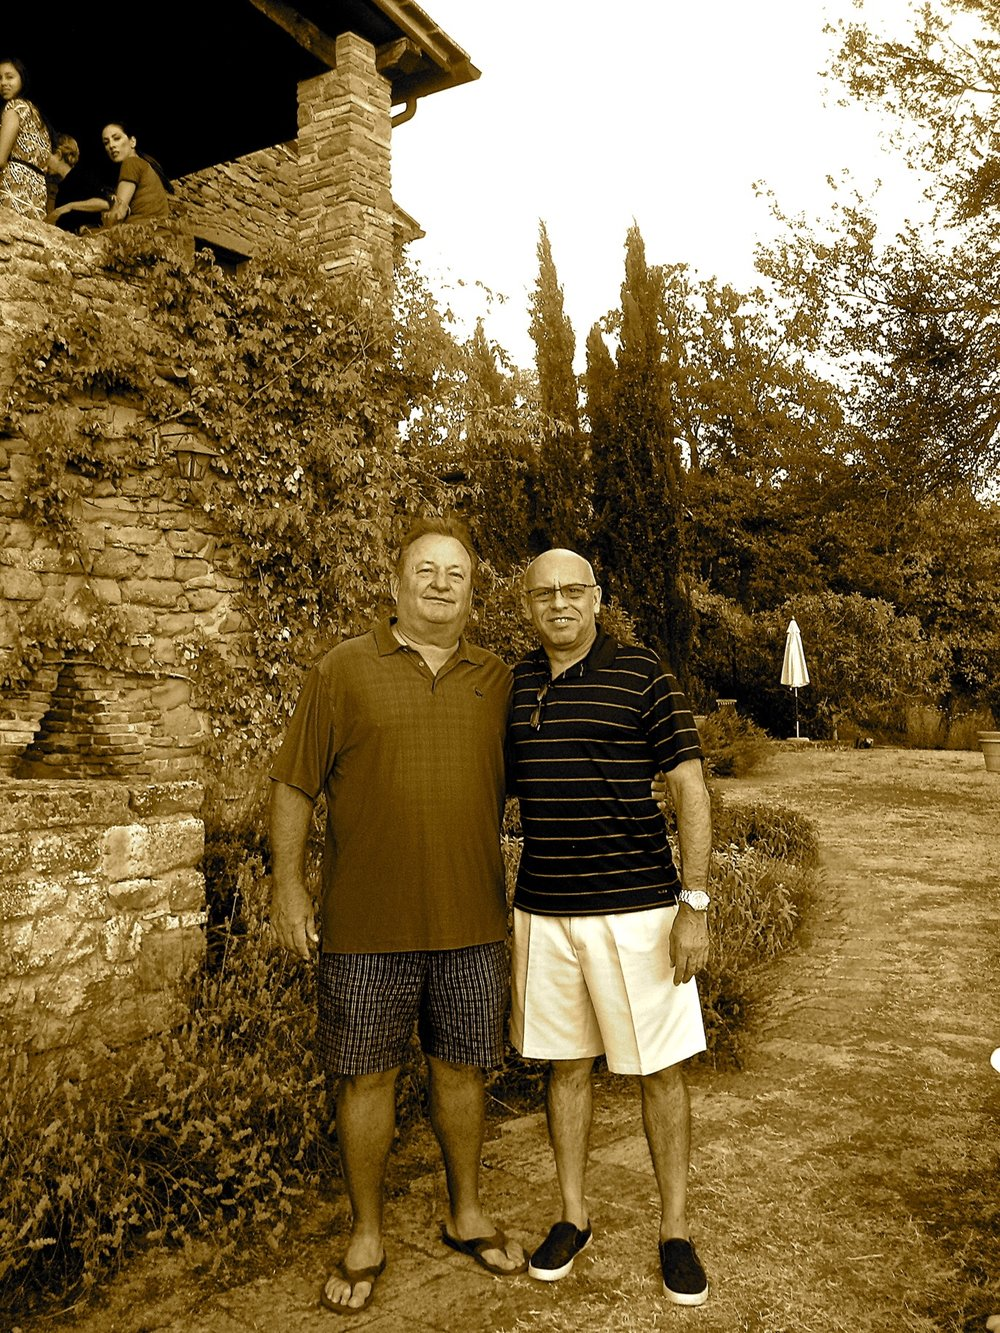 Larry Peery and MC in Umbria, Italy 2012